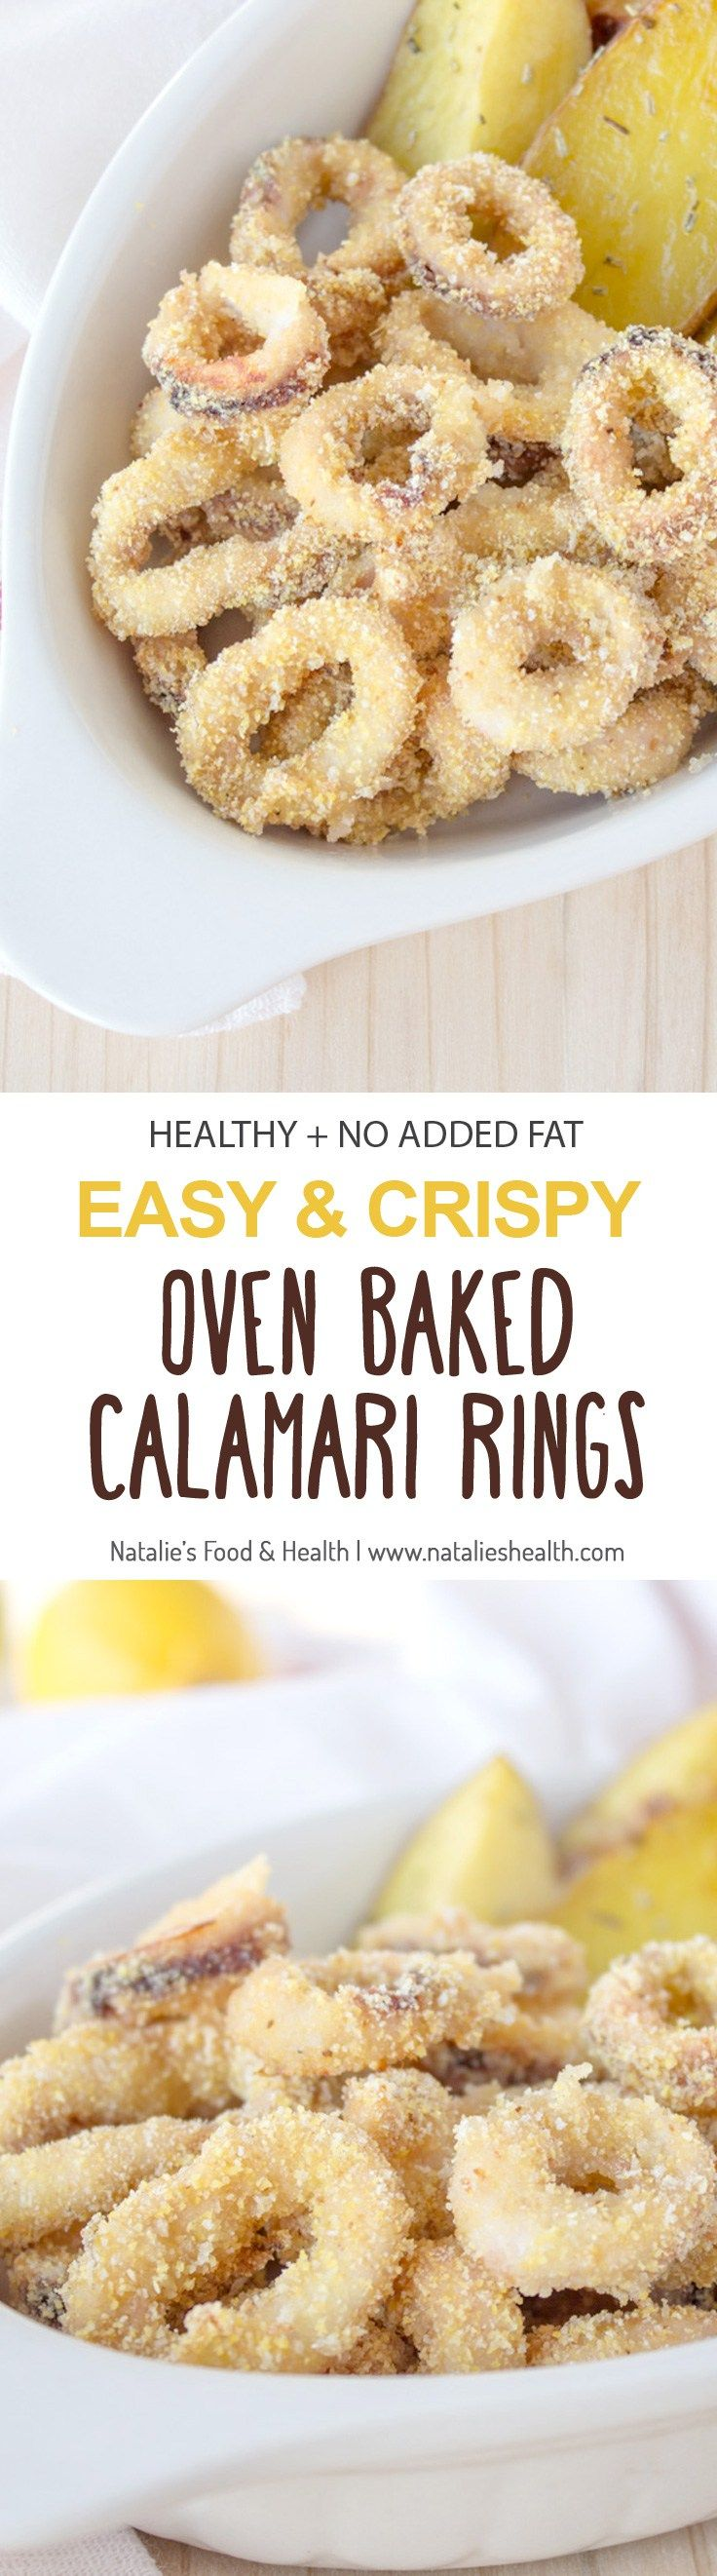 Crispy Oven Baked Calamari Rings - prepared without added fat. Easy, simple and healthy seafood meal for the whole family. : nataliesfoodandhealth #seafood #holiday